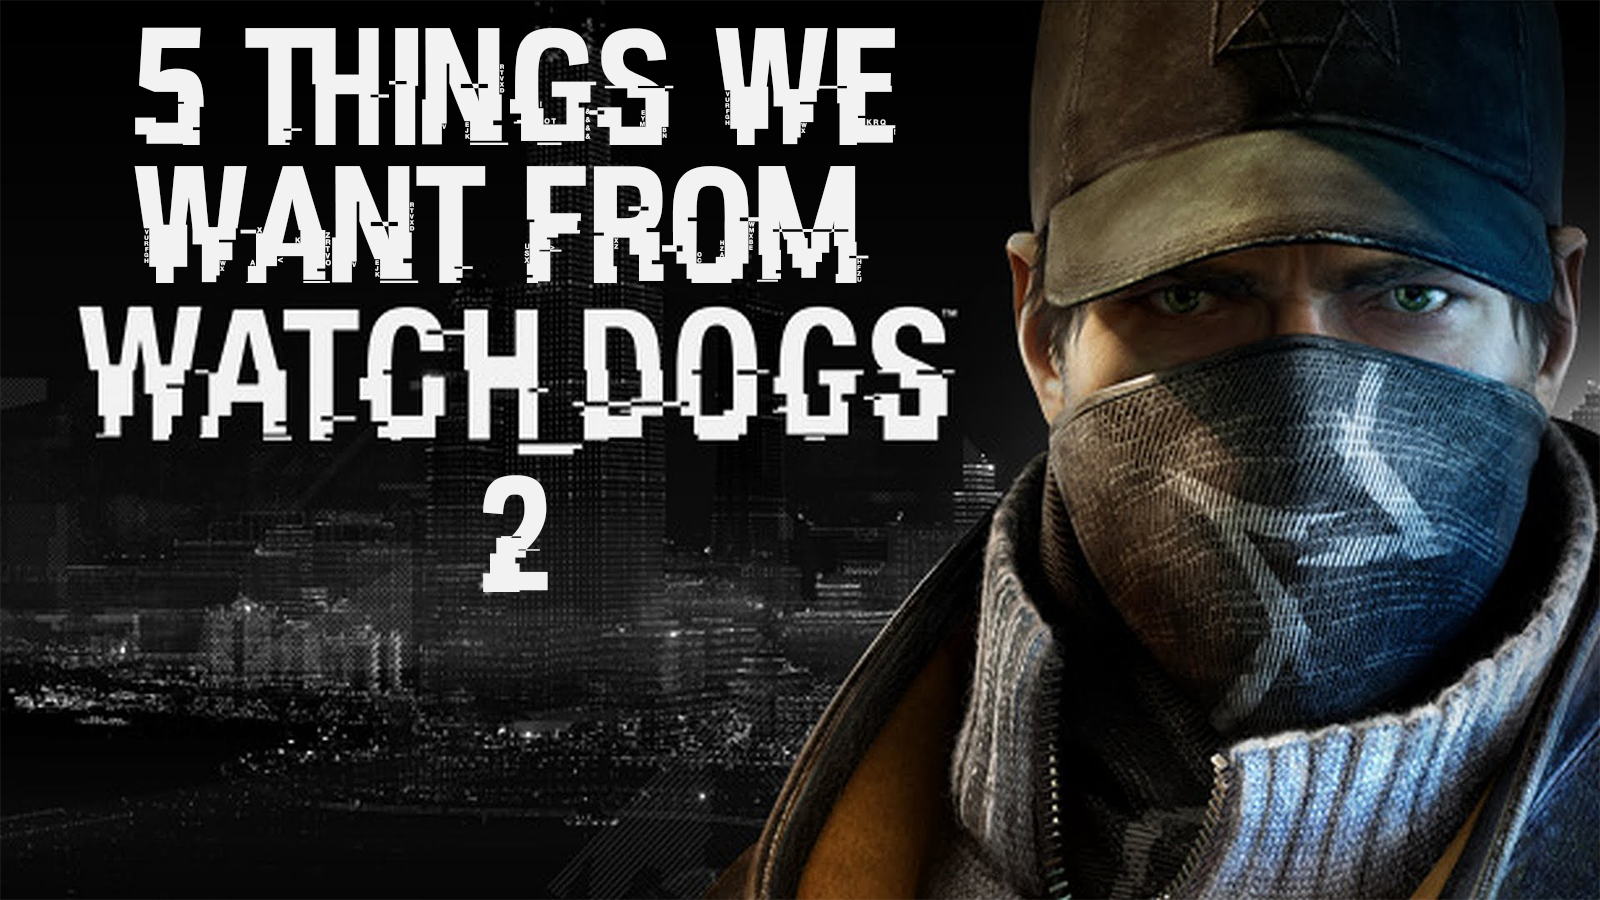 5 Things We Want From 'Watch Dogs 2'